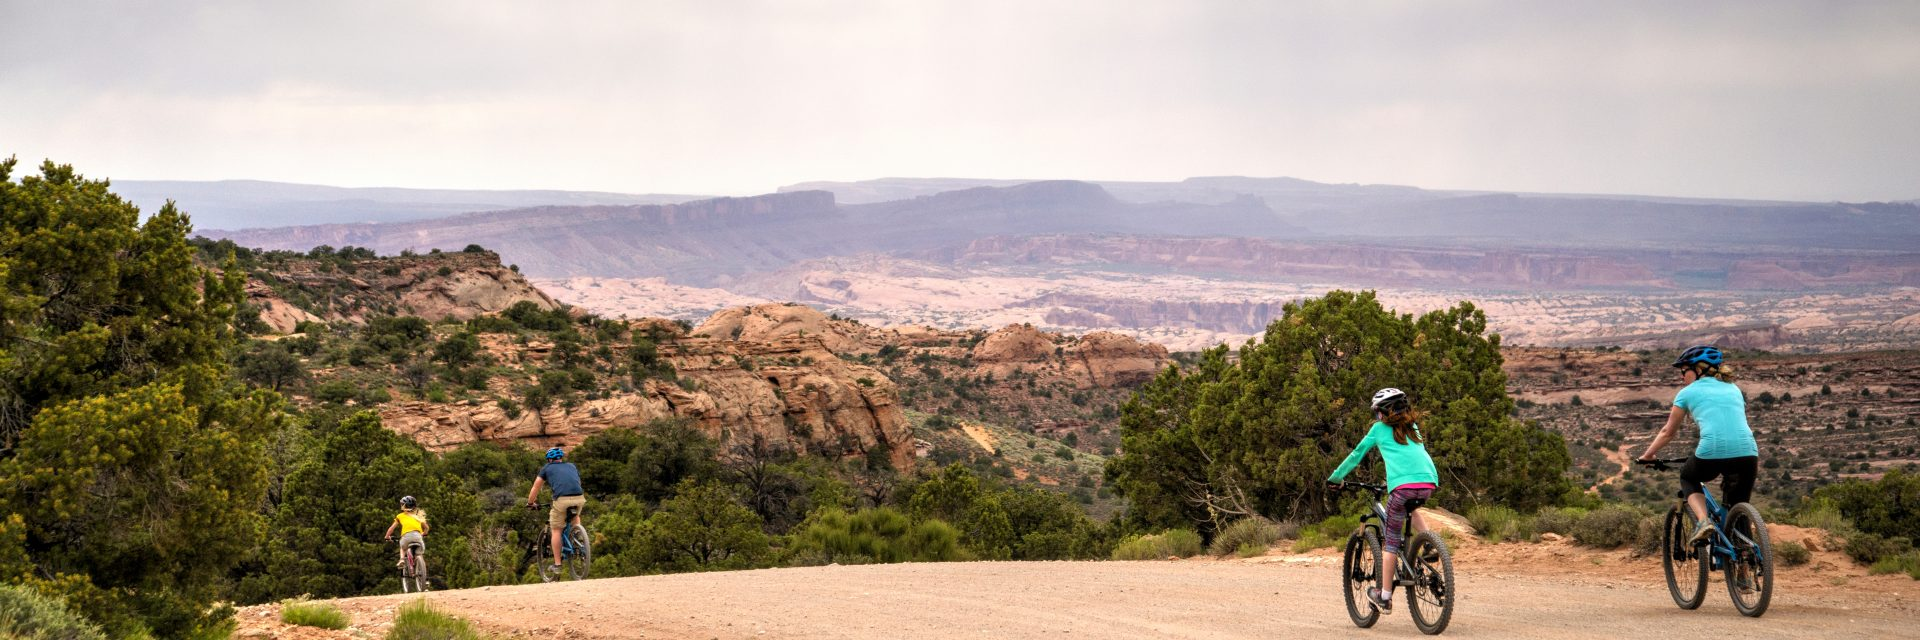 A family coasts down the middle section of the Sand Flats Road on the Sunrise Downhill guided tour with Arches National Park in the distance